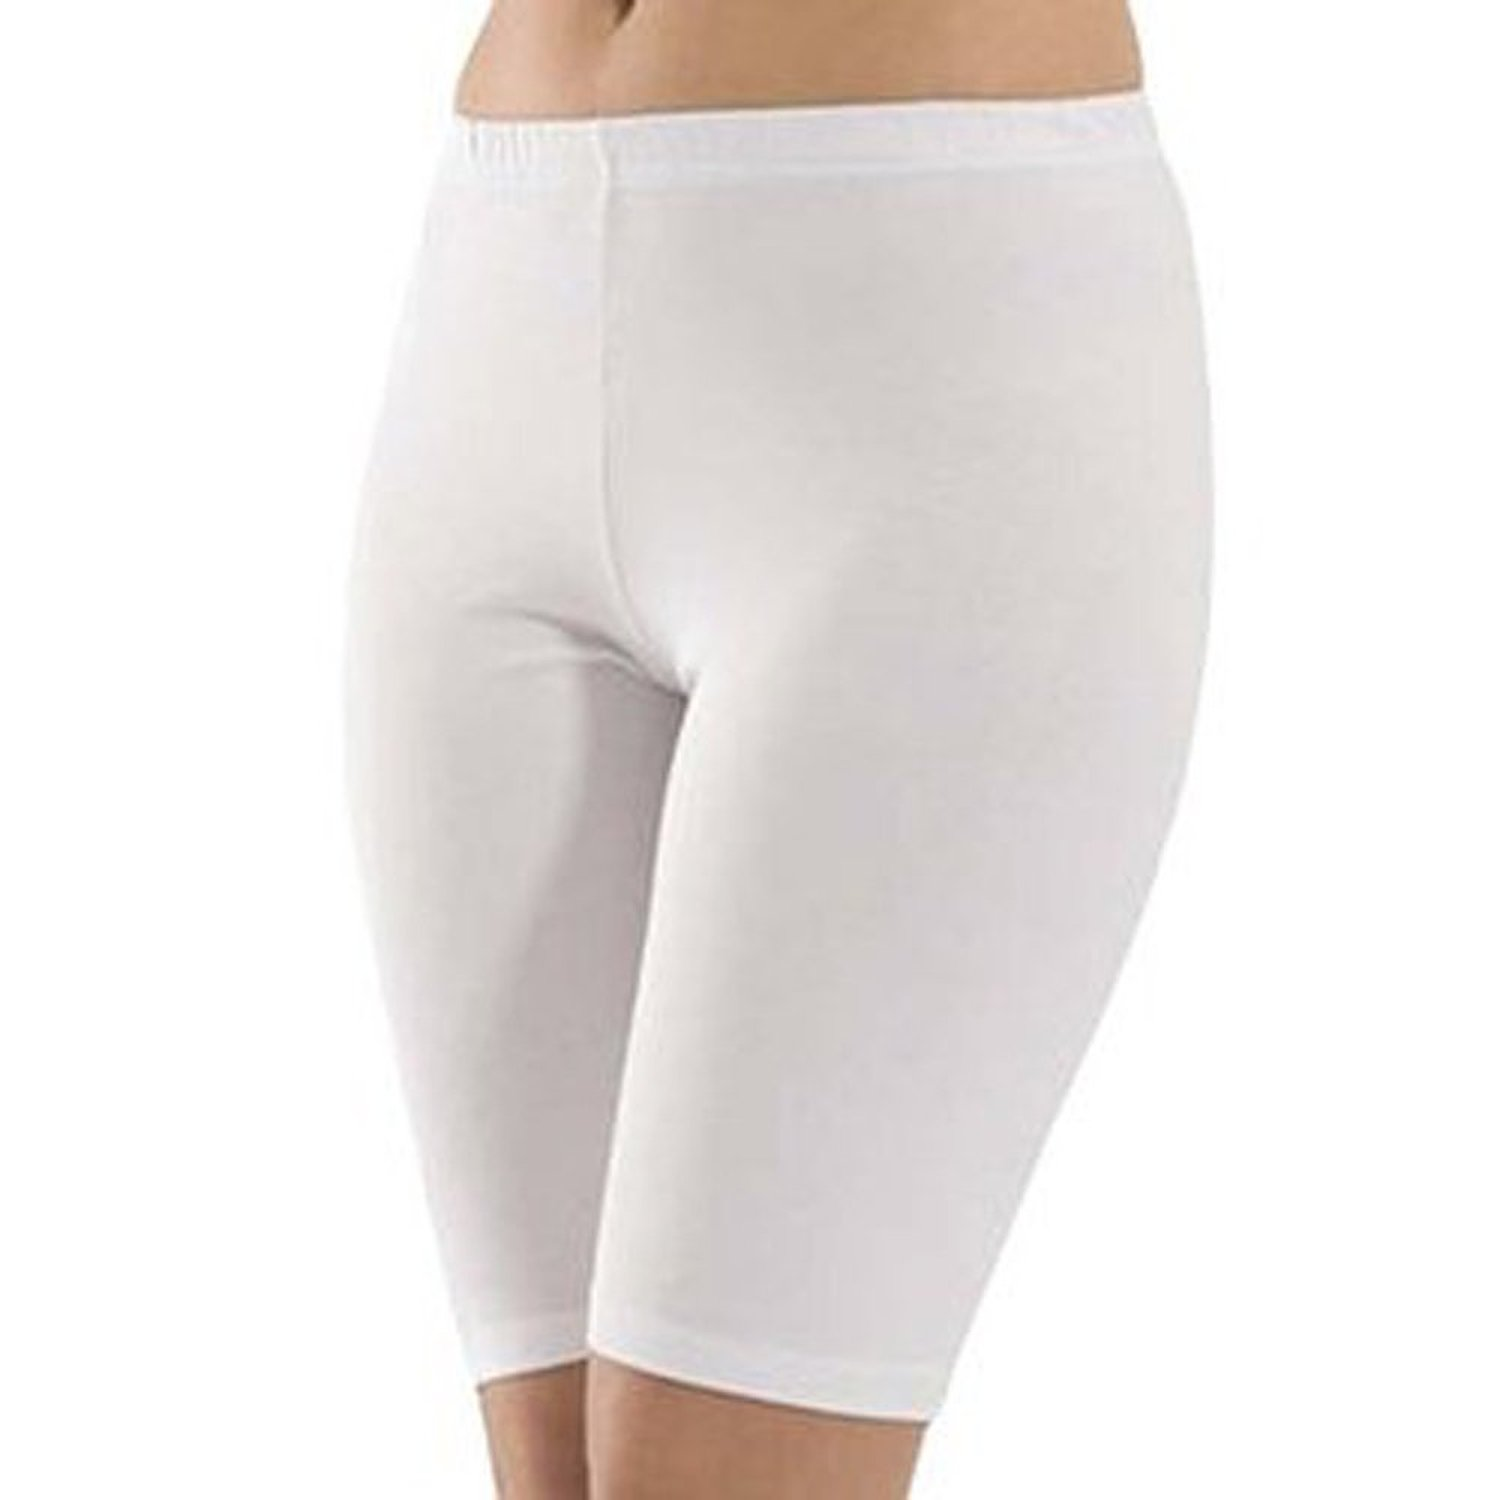 Wholesale Tights Manufacturers Leggins India Ladies Leggings Manufacturer And Wholeseller